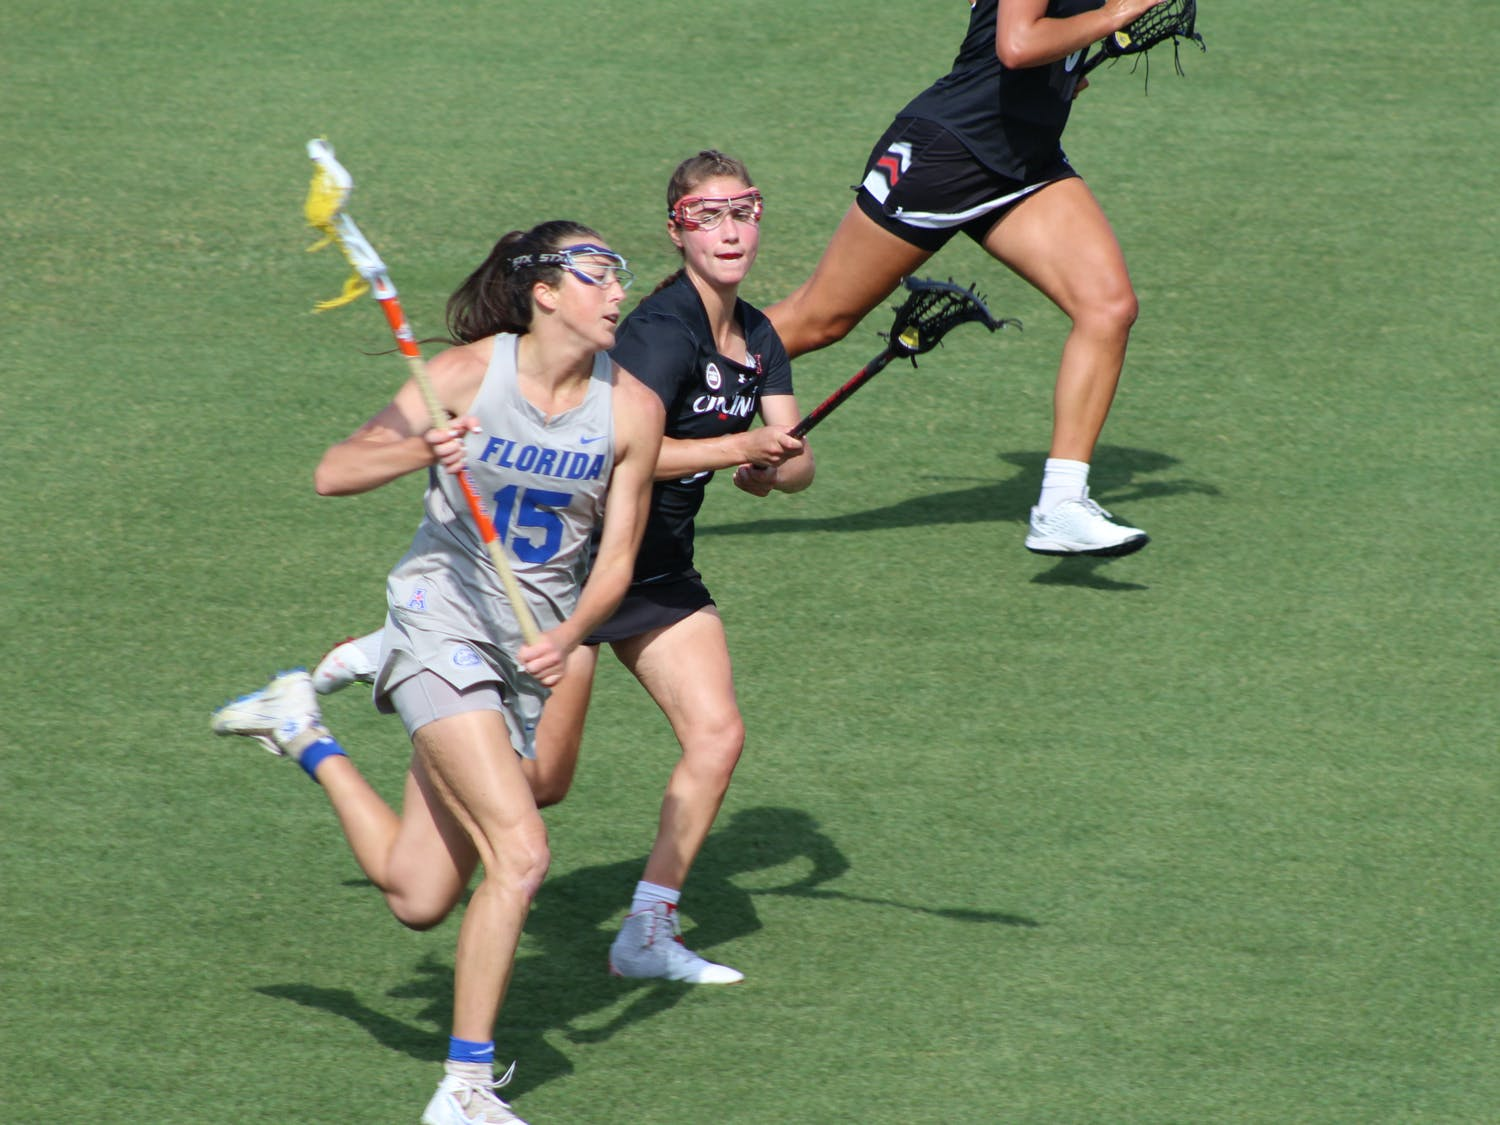 Senior Grace Haus runs down the field in Florida's win over Cincinnati on May 6. The Gators look to take home the AAC Championship Saturday against Temple.